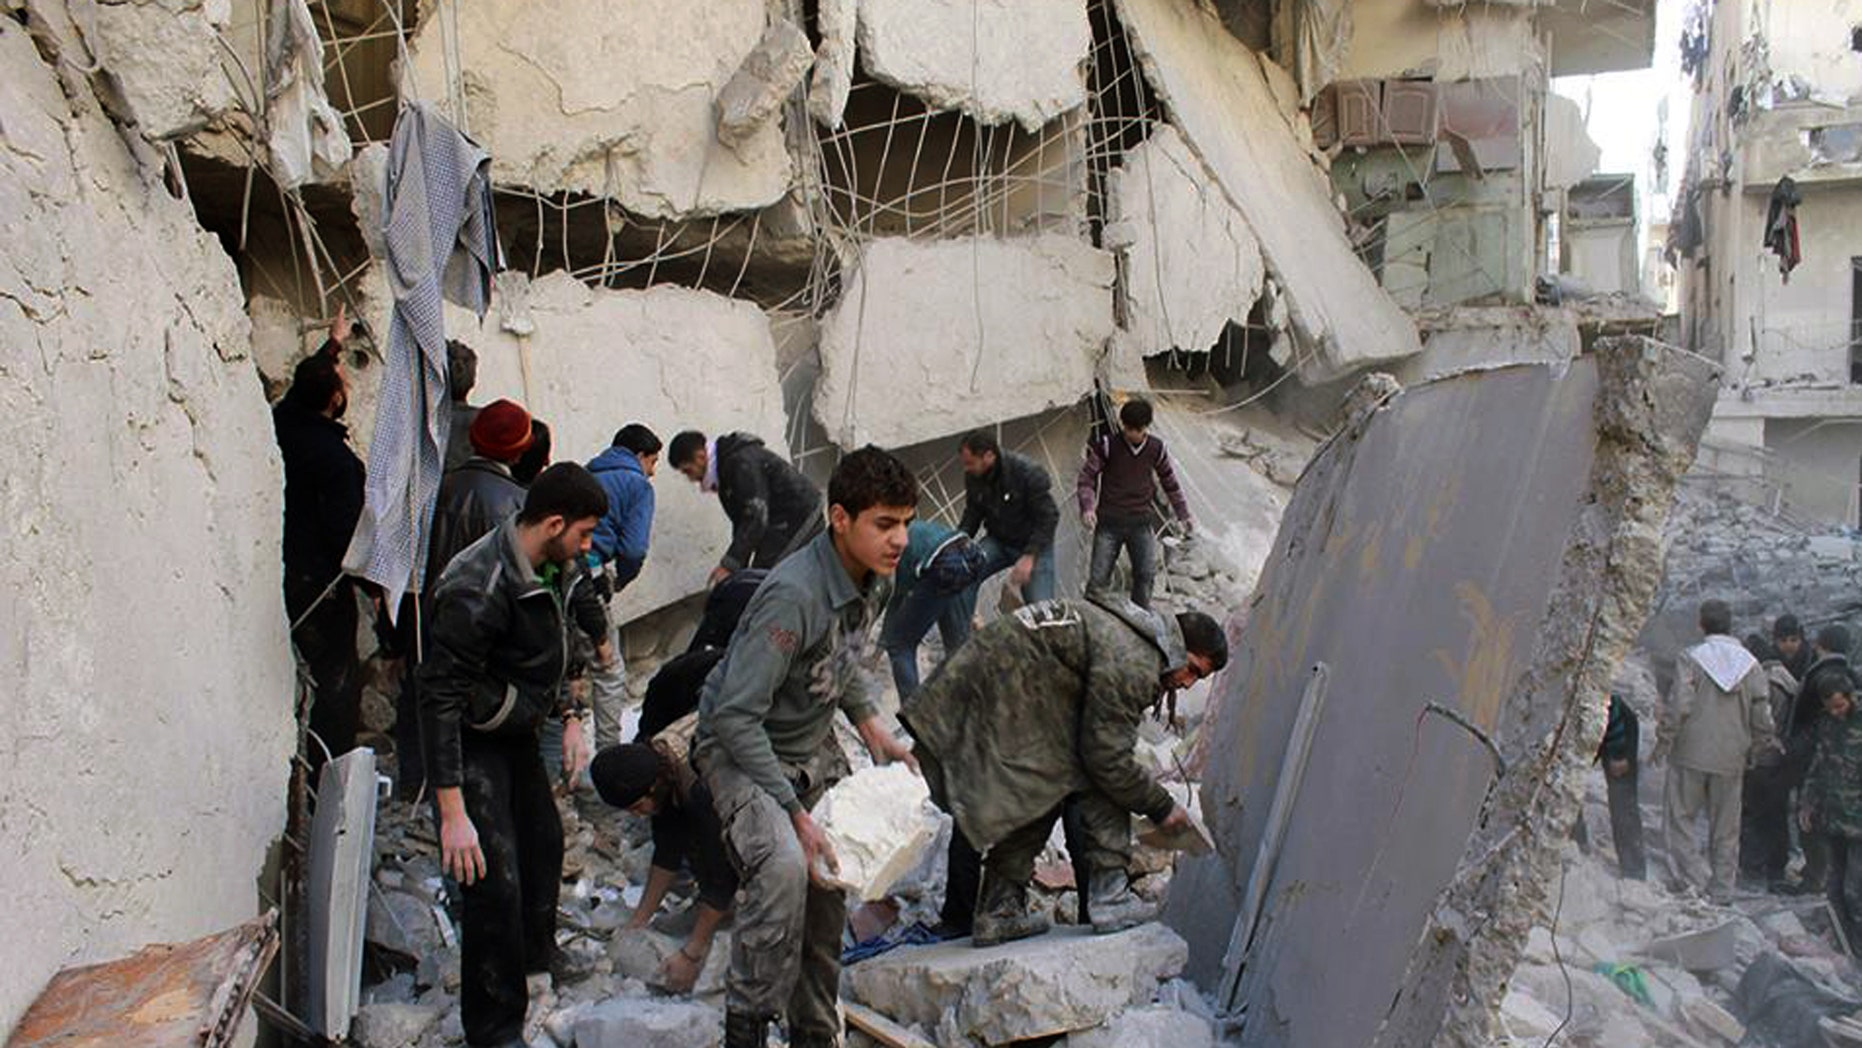 Jan. 31, 2014: In this citizen journalism image provided by Aleppo Media Center (AMC), an anti-Bashar Assad activist group, which has been authenticated based on its contents and other AP reporting, Syrians inspect the rubble of destroyed buildings following a Syrian government airstrike in Aleppo, Syria.